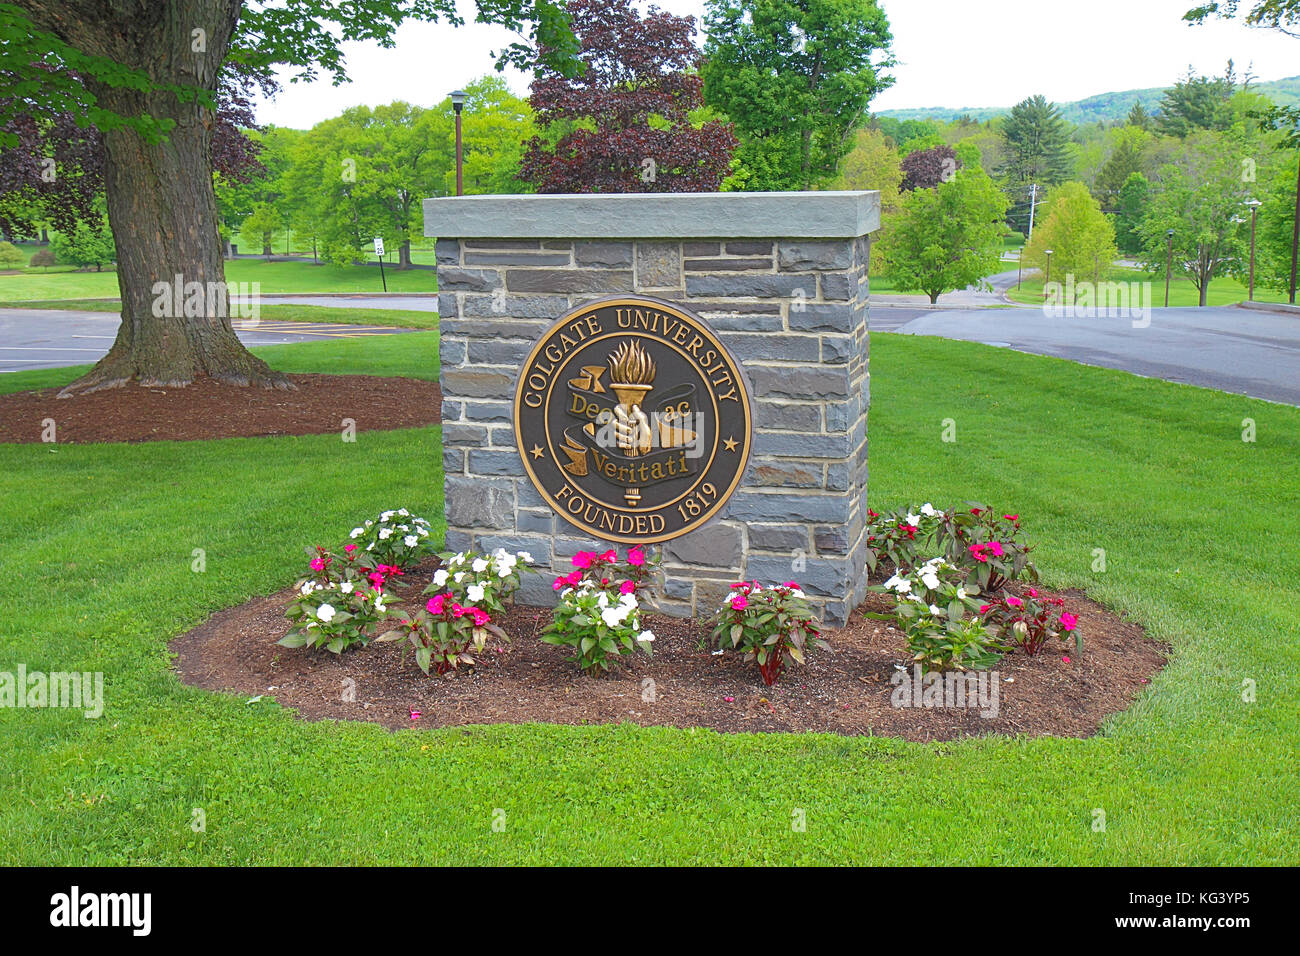 HAMILTON, NEW YORK - MAY 28 2017: Sign marking the campus of   Colgate University in the village of Hamilton in Stock Photo